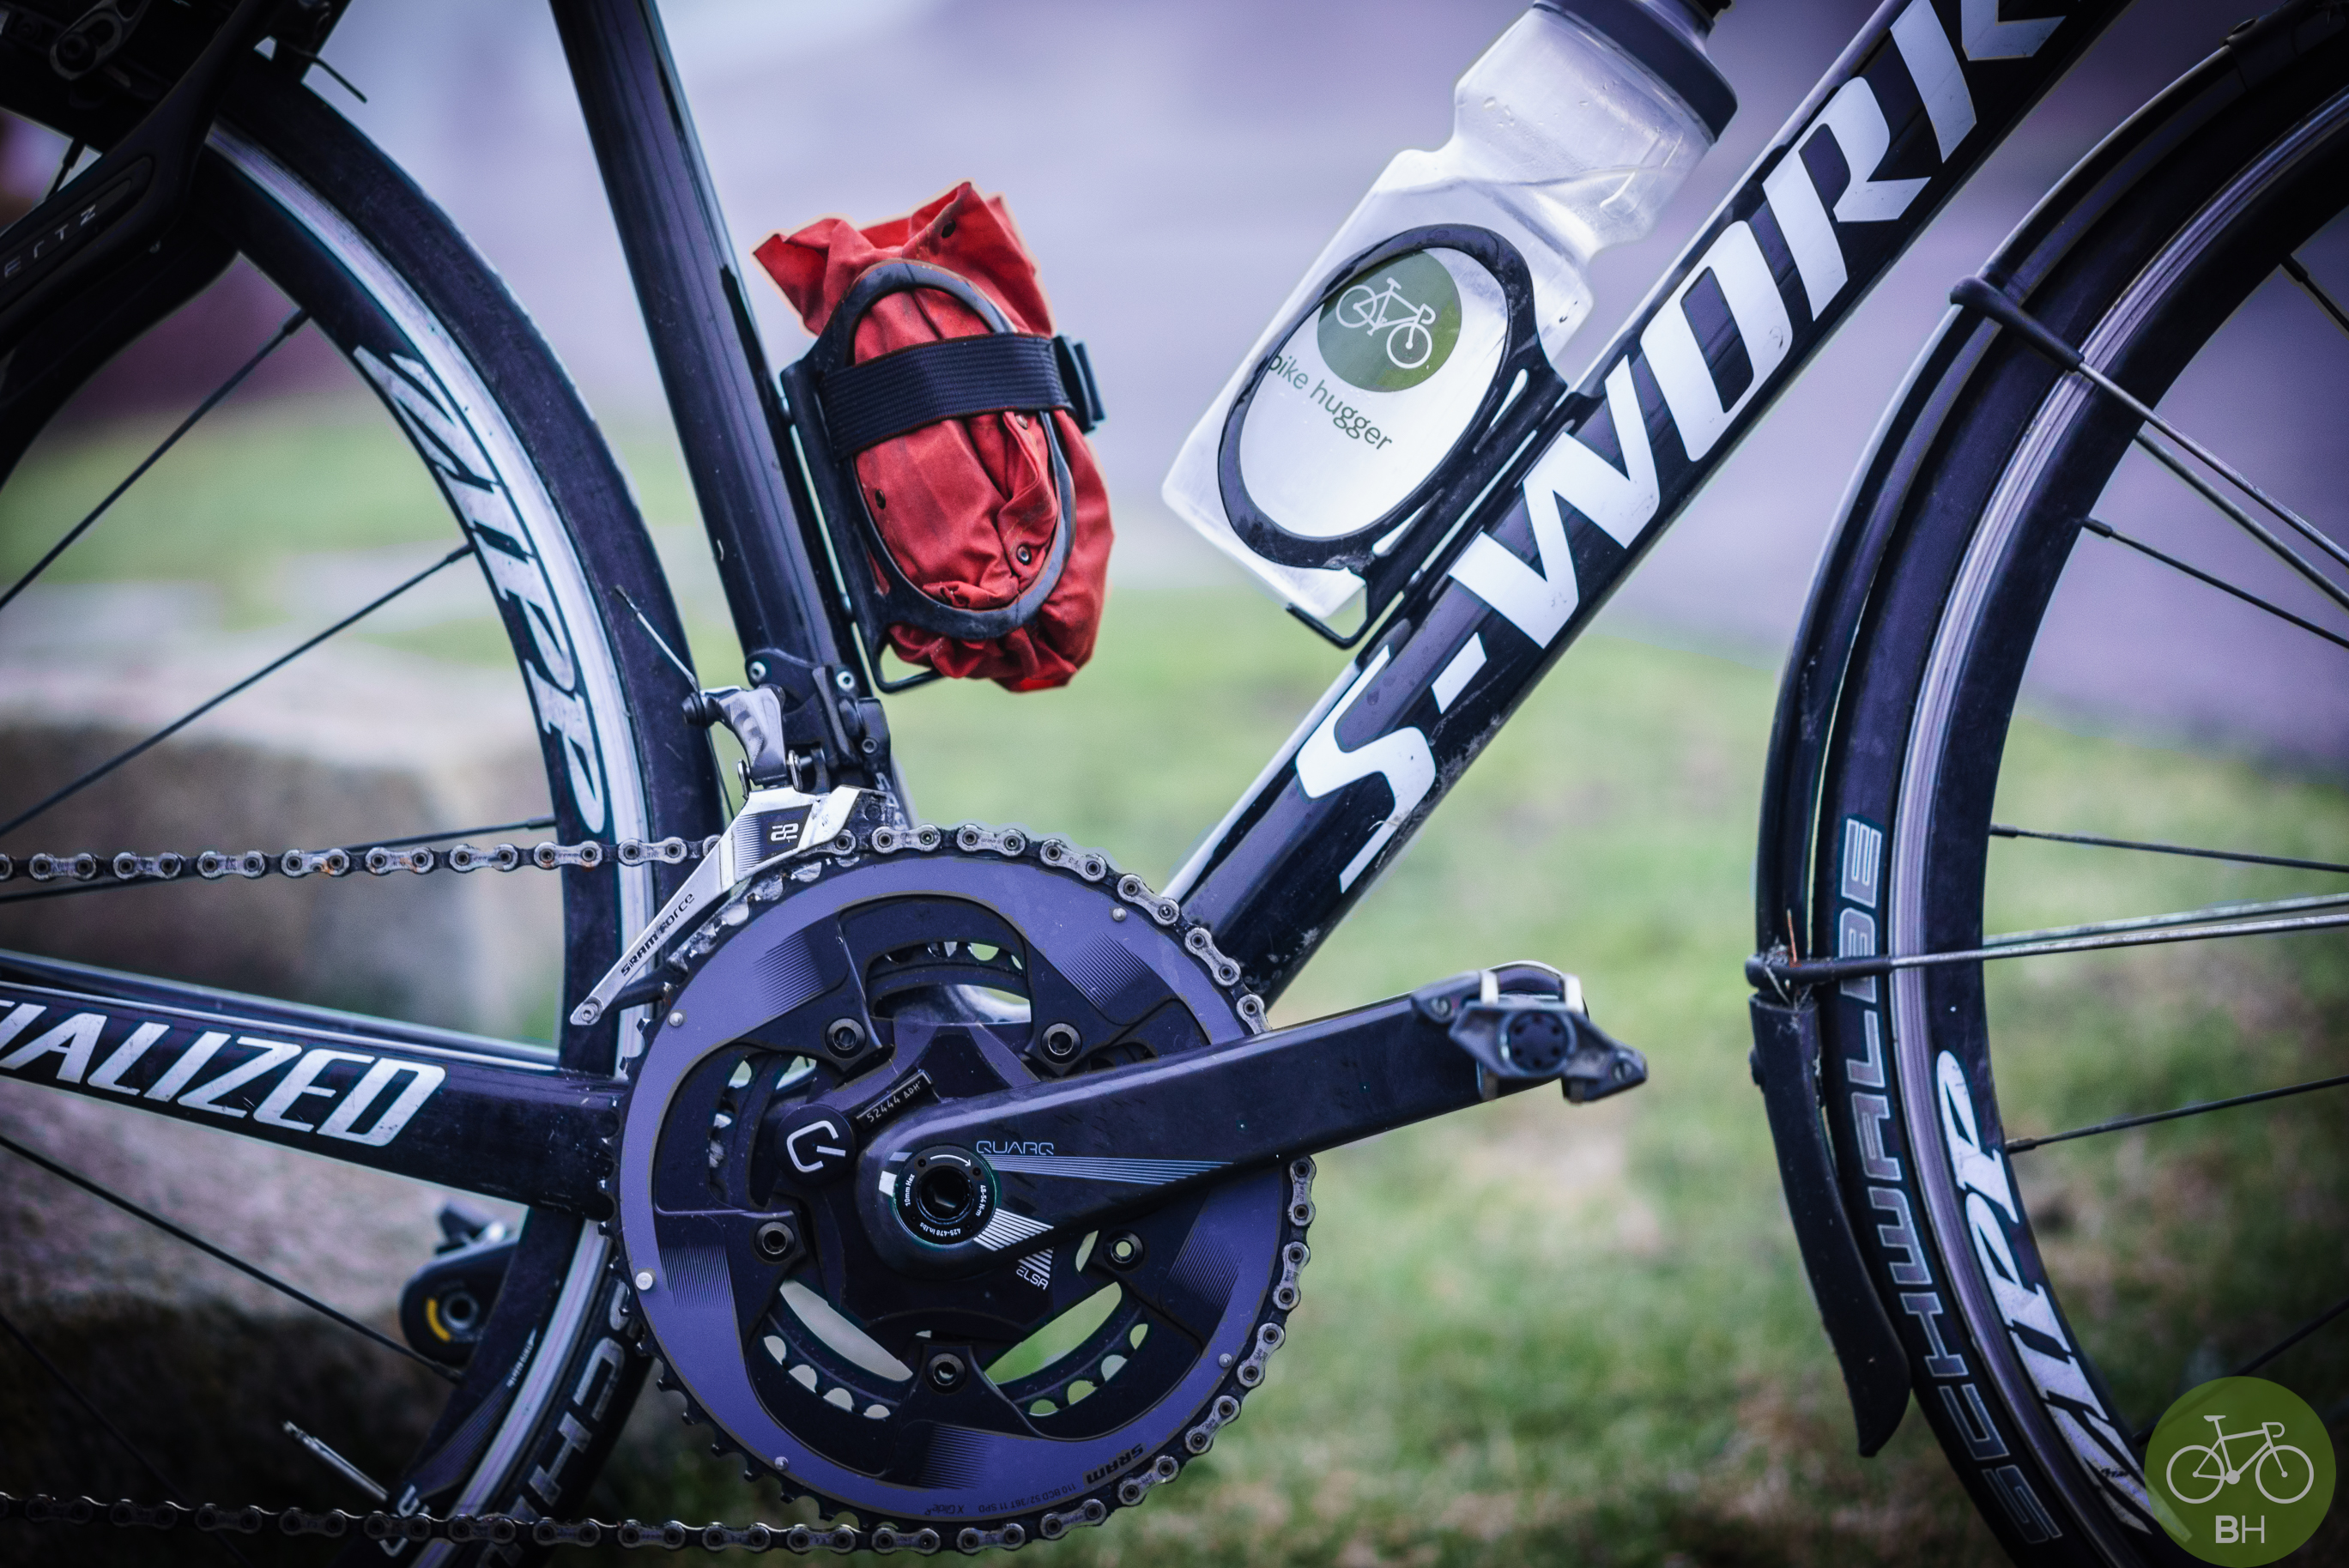 Force 22 with Quarq